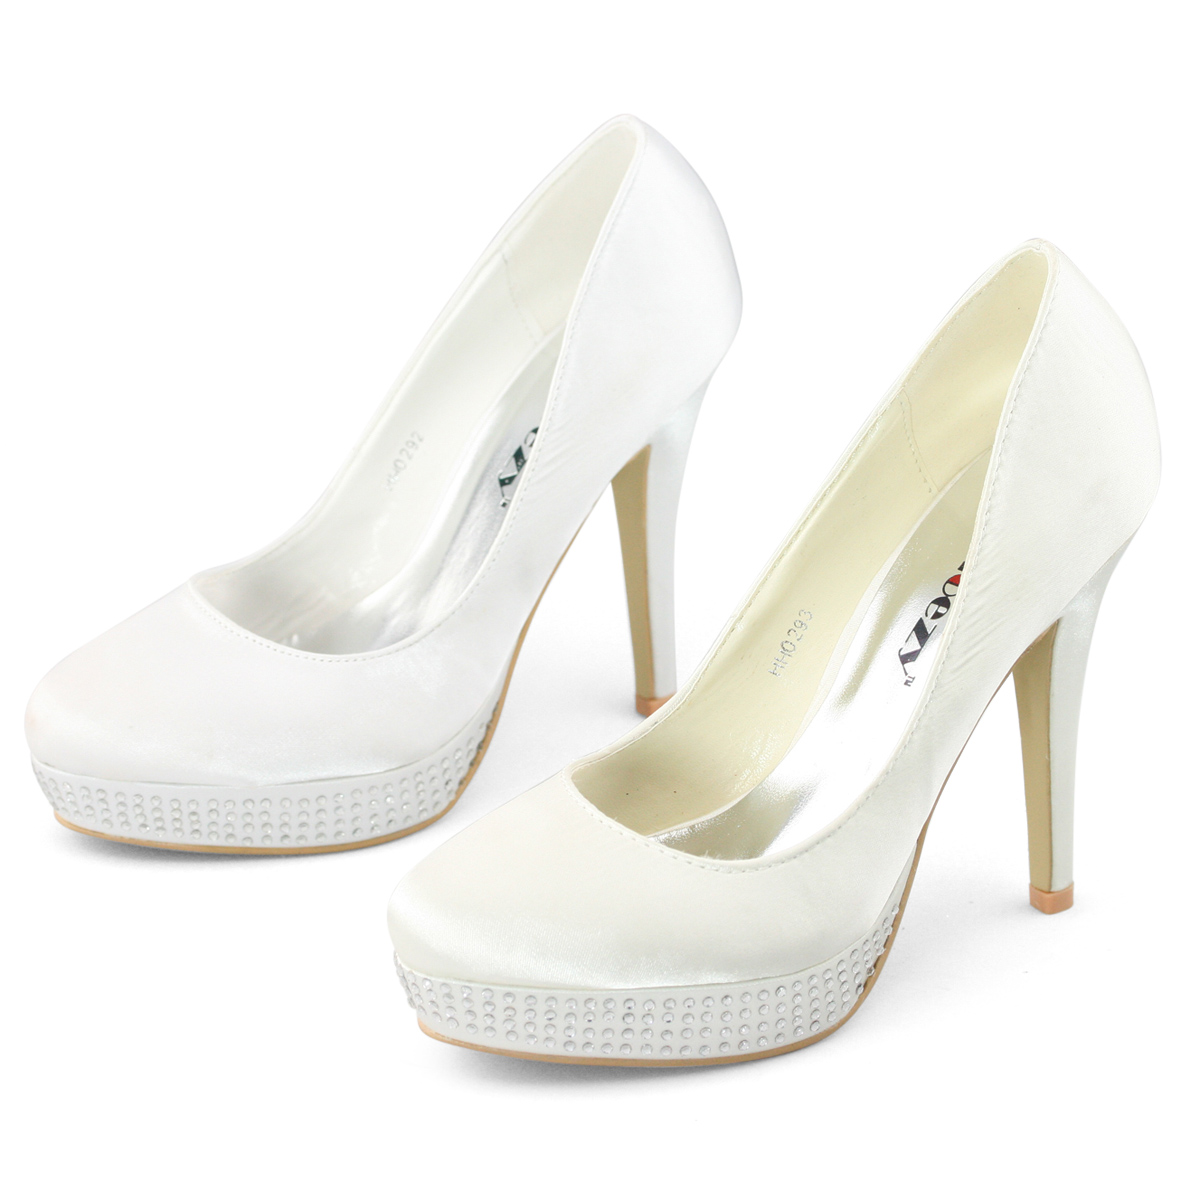 SHOEZY-Womens-Ivory-Satin-Platform-Diamante-Wedding-Dress-High-Heels